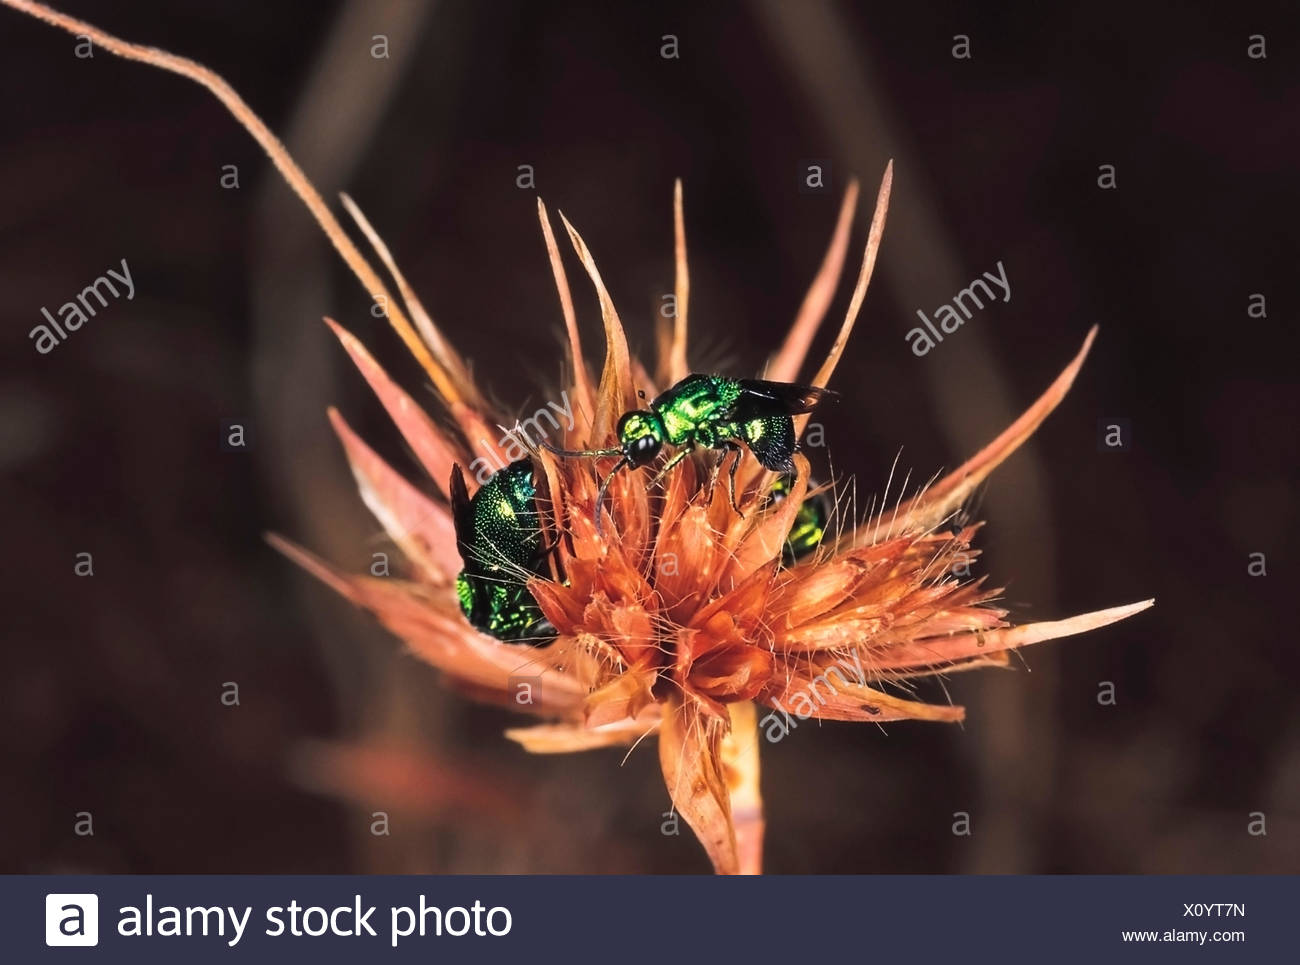 Cuckoo Wasps. Family: Chrysidae. Torna fort, Pune, Maharashtra, India. - Stock Image